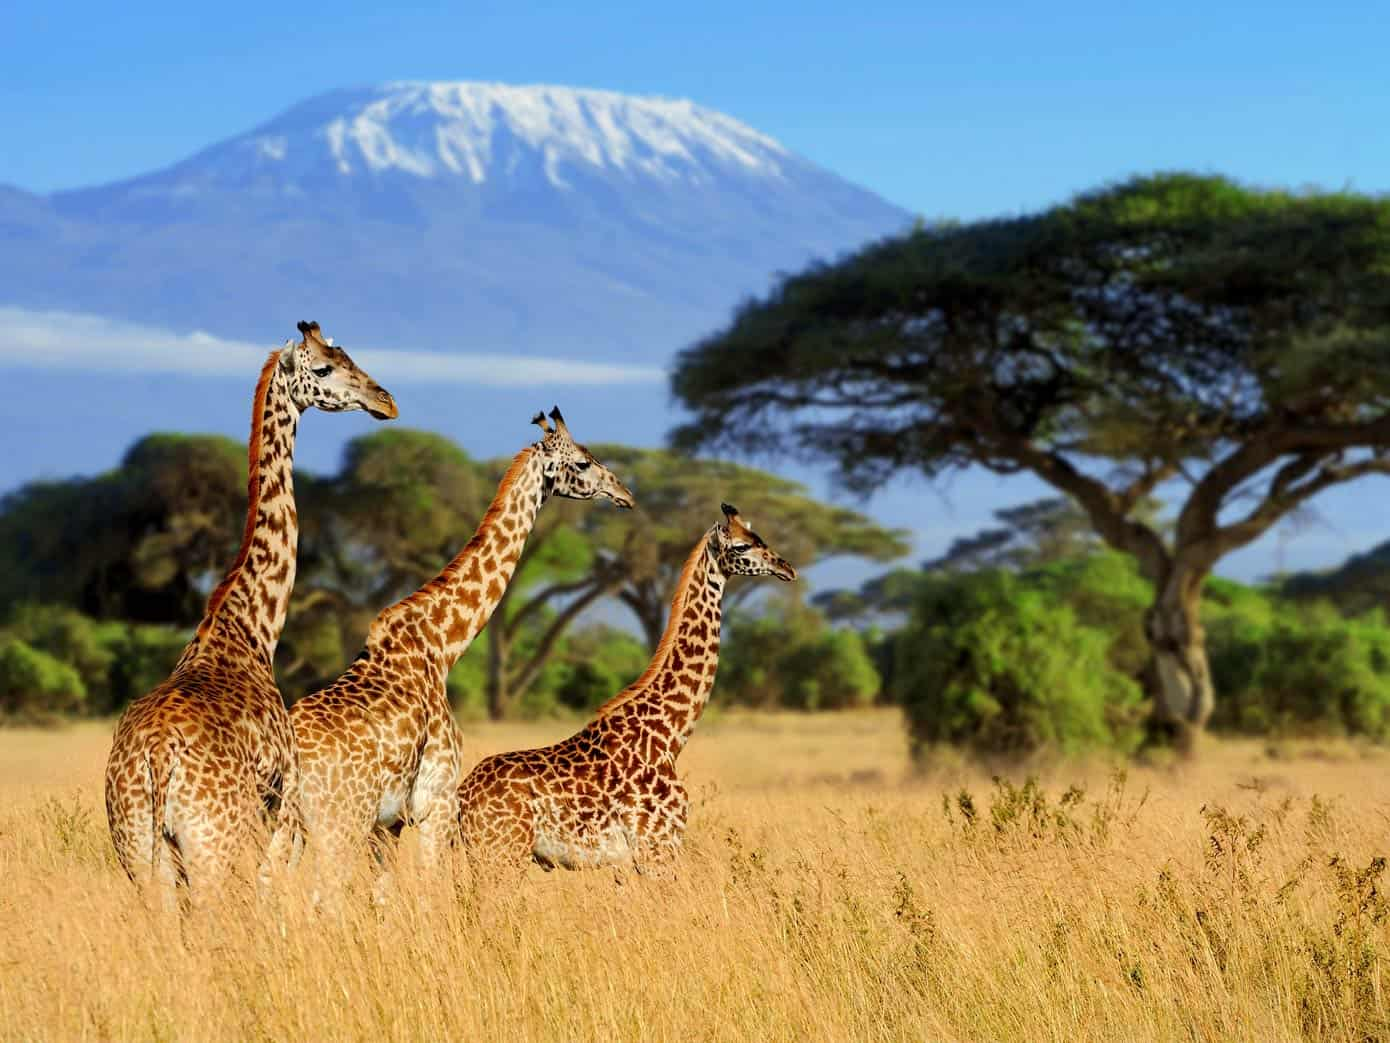 Three giraffes in the wild on an African safari tour. Mount Kilimanjaro visible in the background.